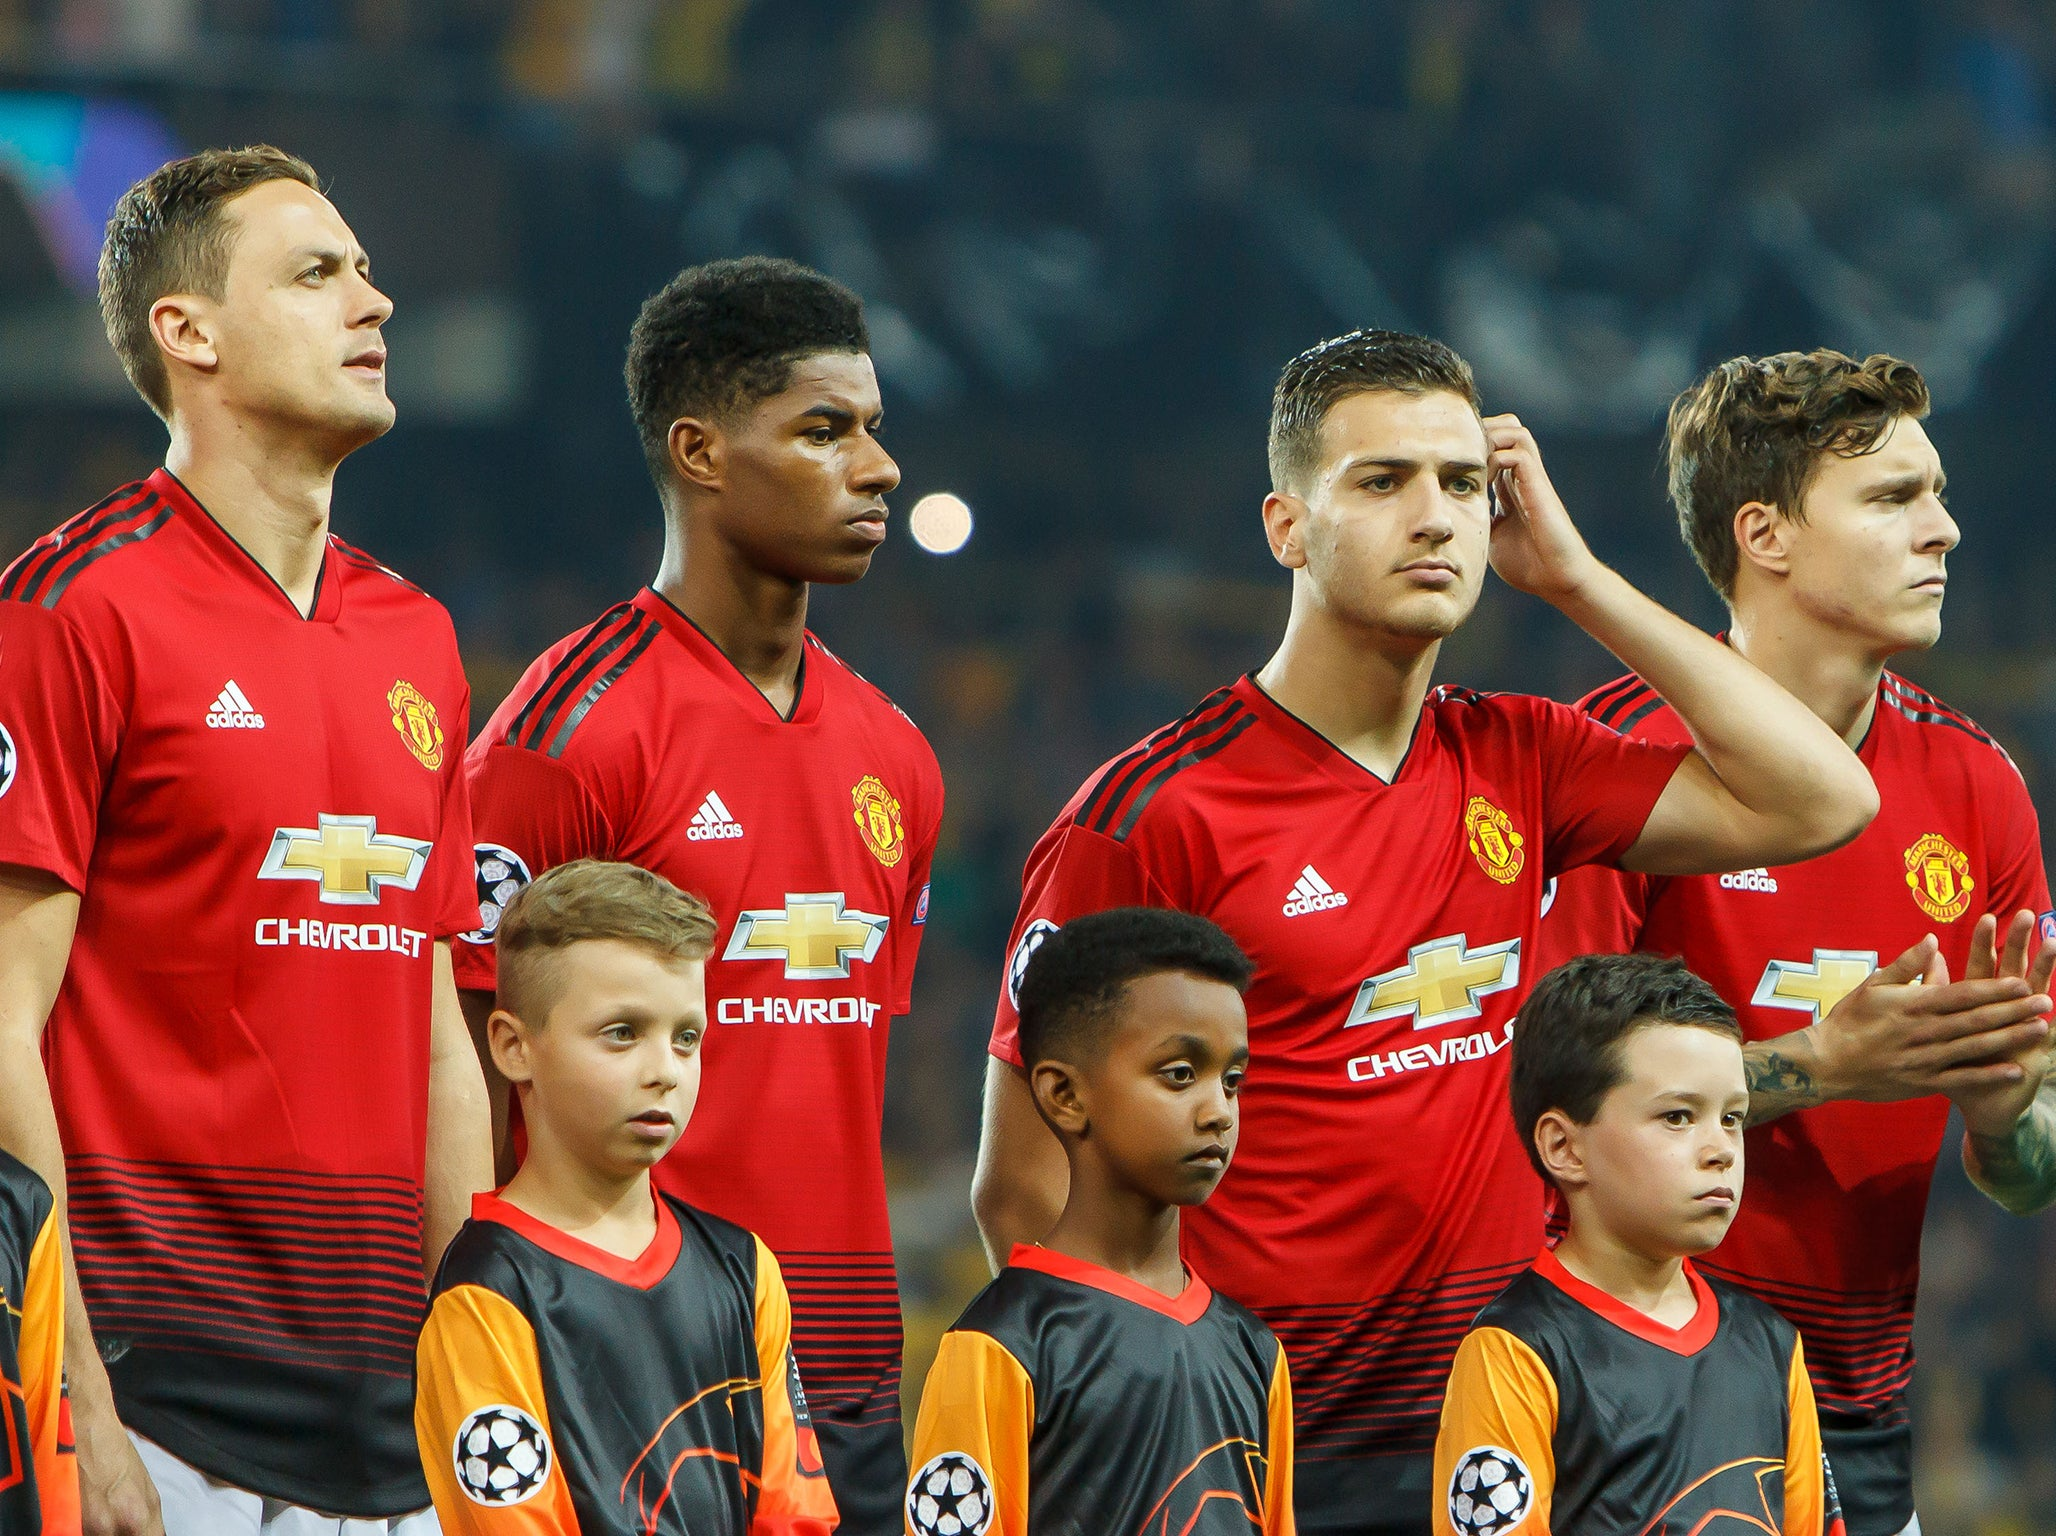 manchester united have battled back after their defeat by tottenham